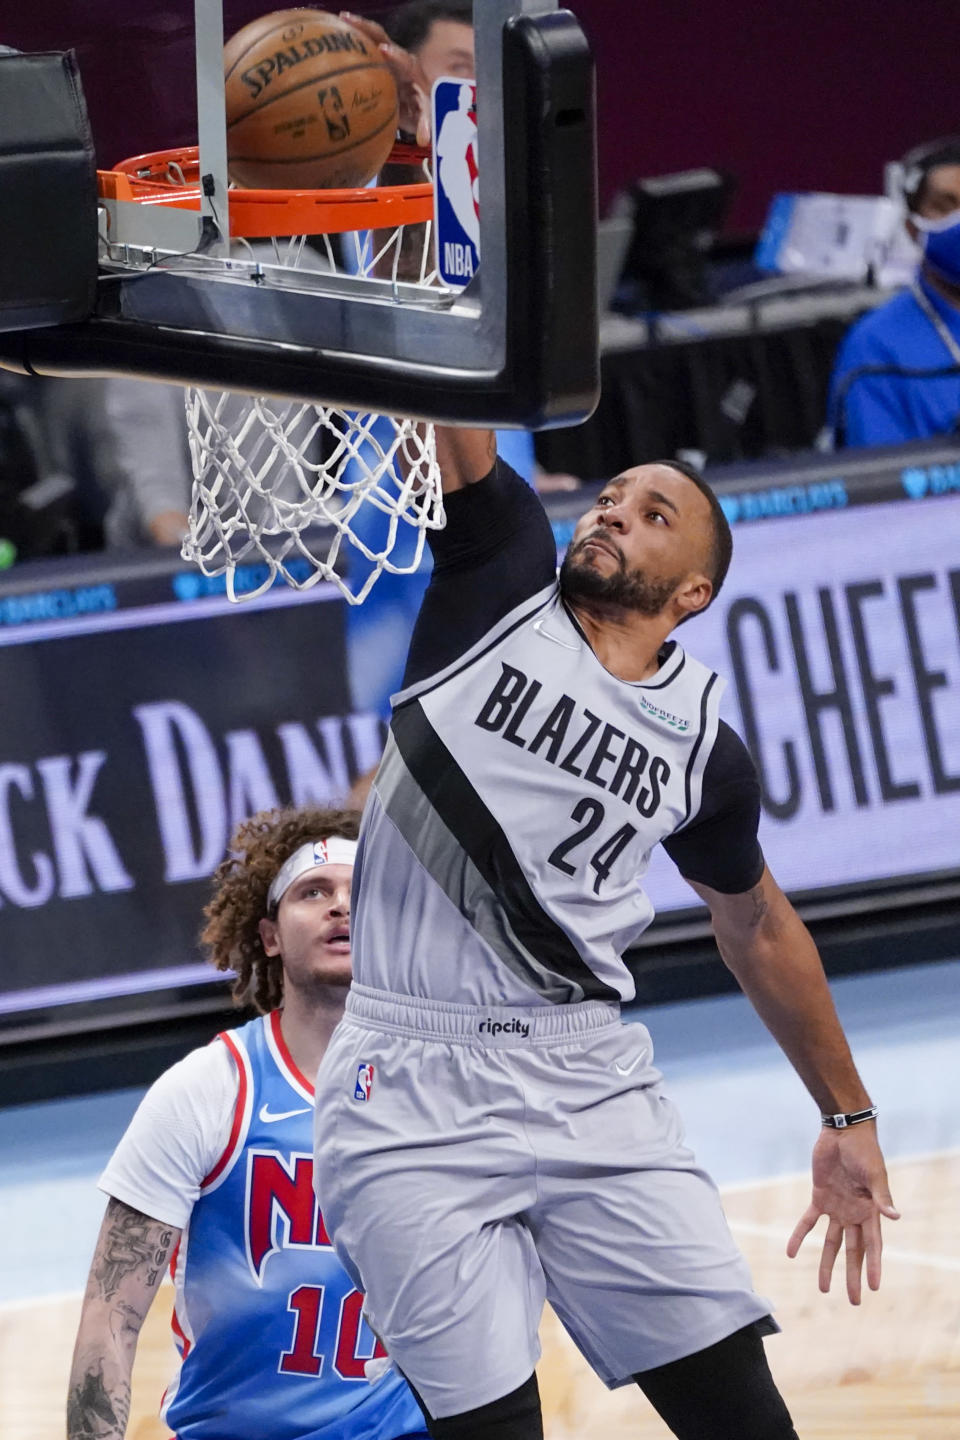 Portland Trail Blazers forward Norman Powell (24) dunks during the second half of an NBA basketball game against the Brooklyn Nets, Friday, April 30, 2021, in New York. (AP Photo/Mary Altaffer)